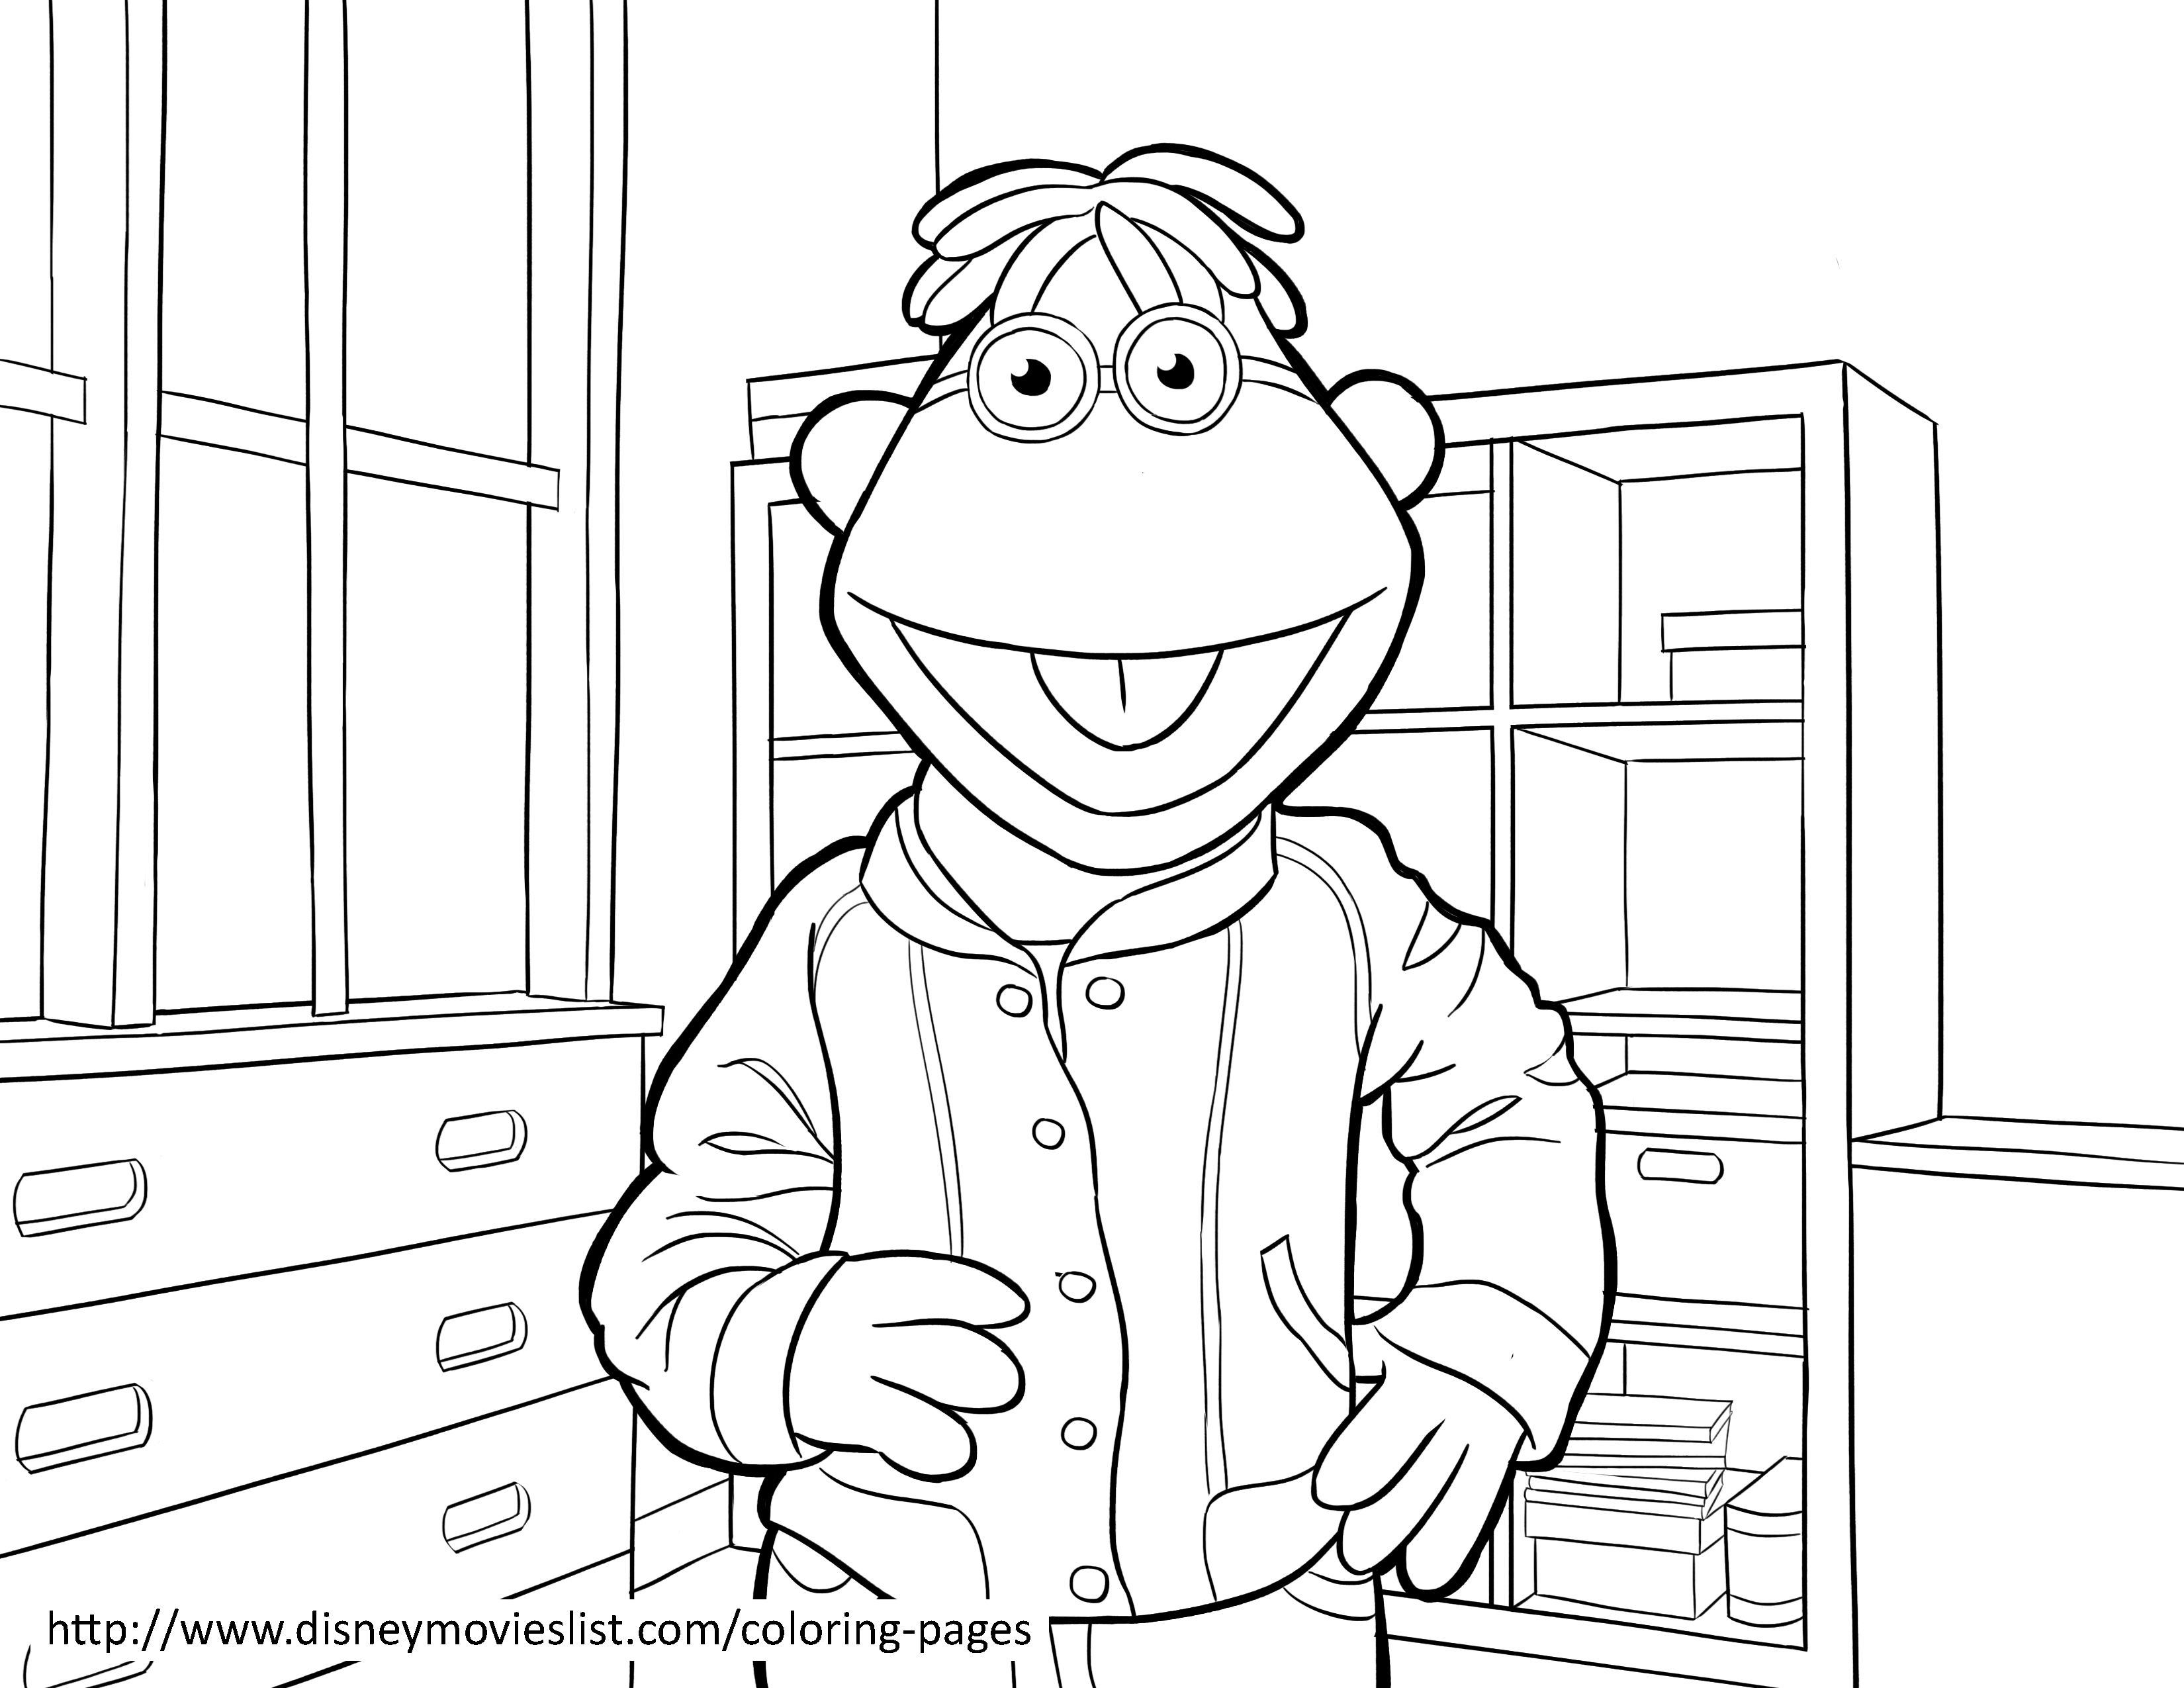 3300x2550 Muppet Coloring Pages The Muppets Disney Colori On Show Throughout